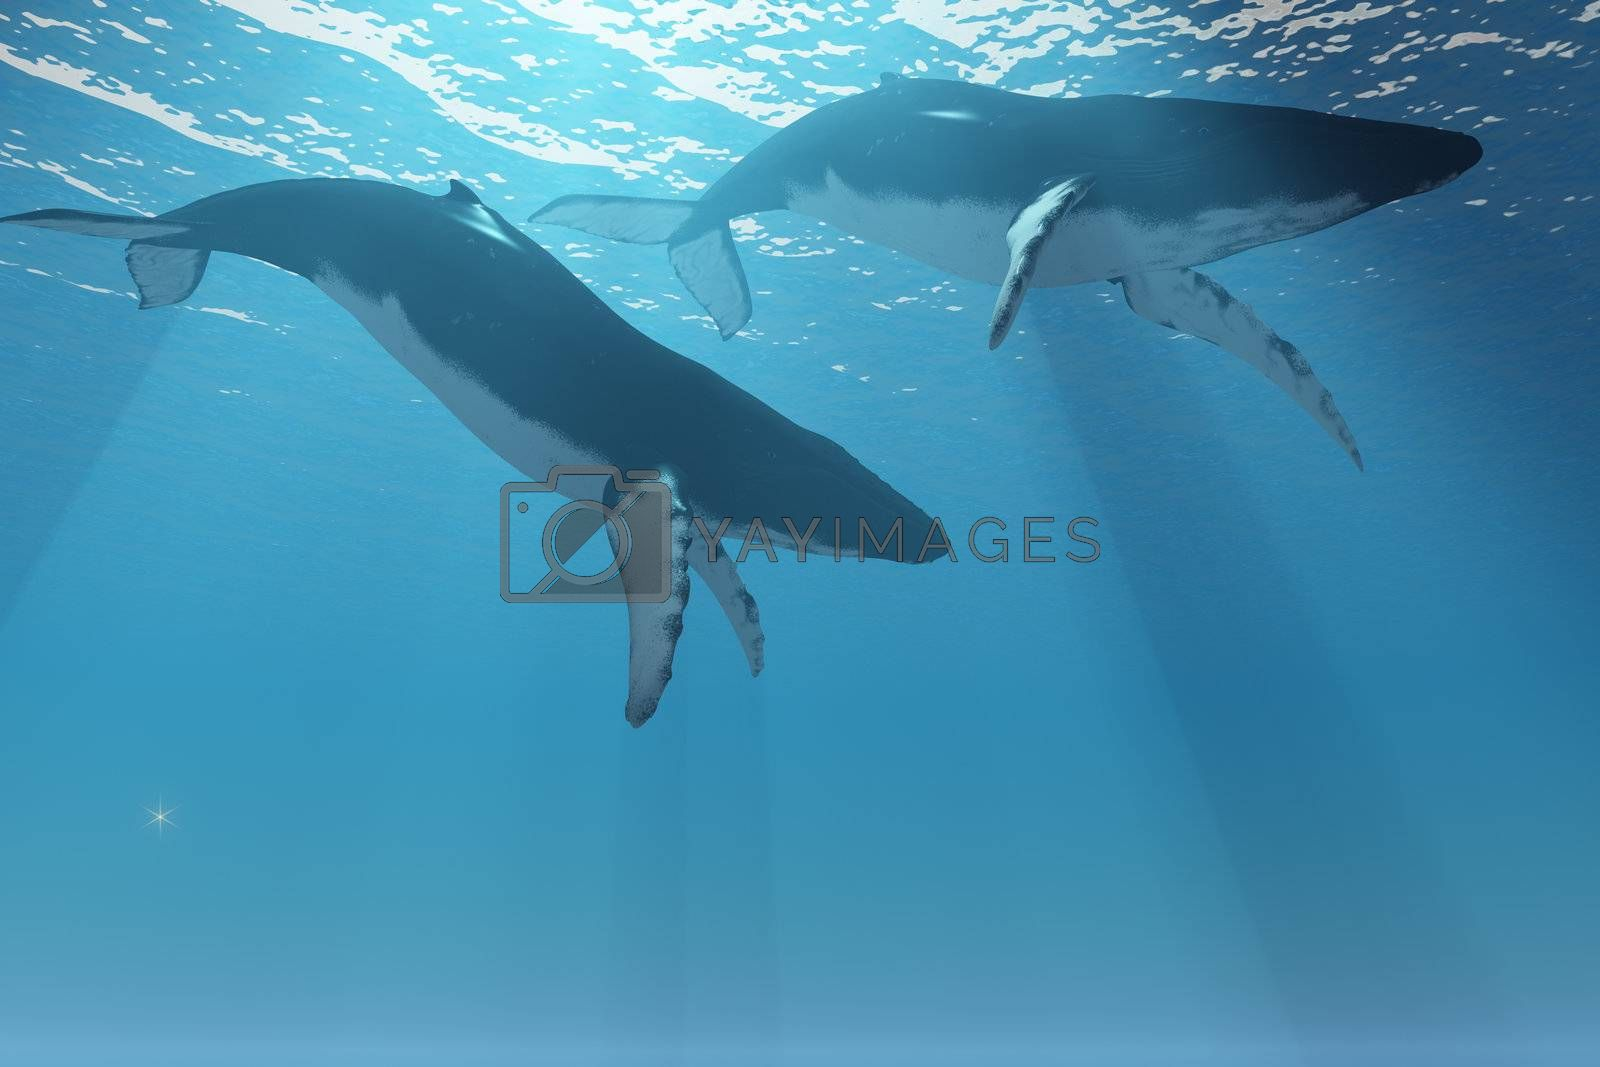 Two Humpback whales swim near the ocean surface in the light rays from the sun.